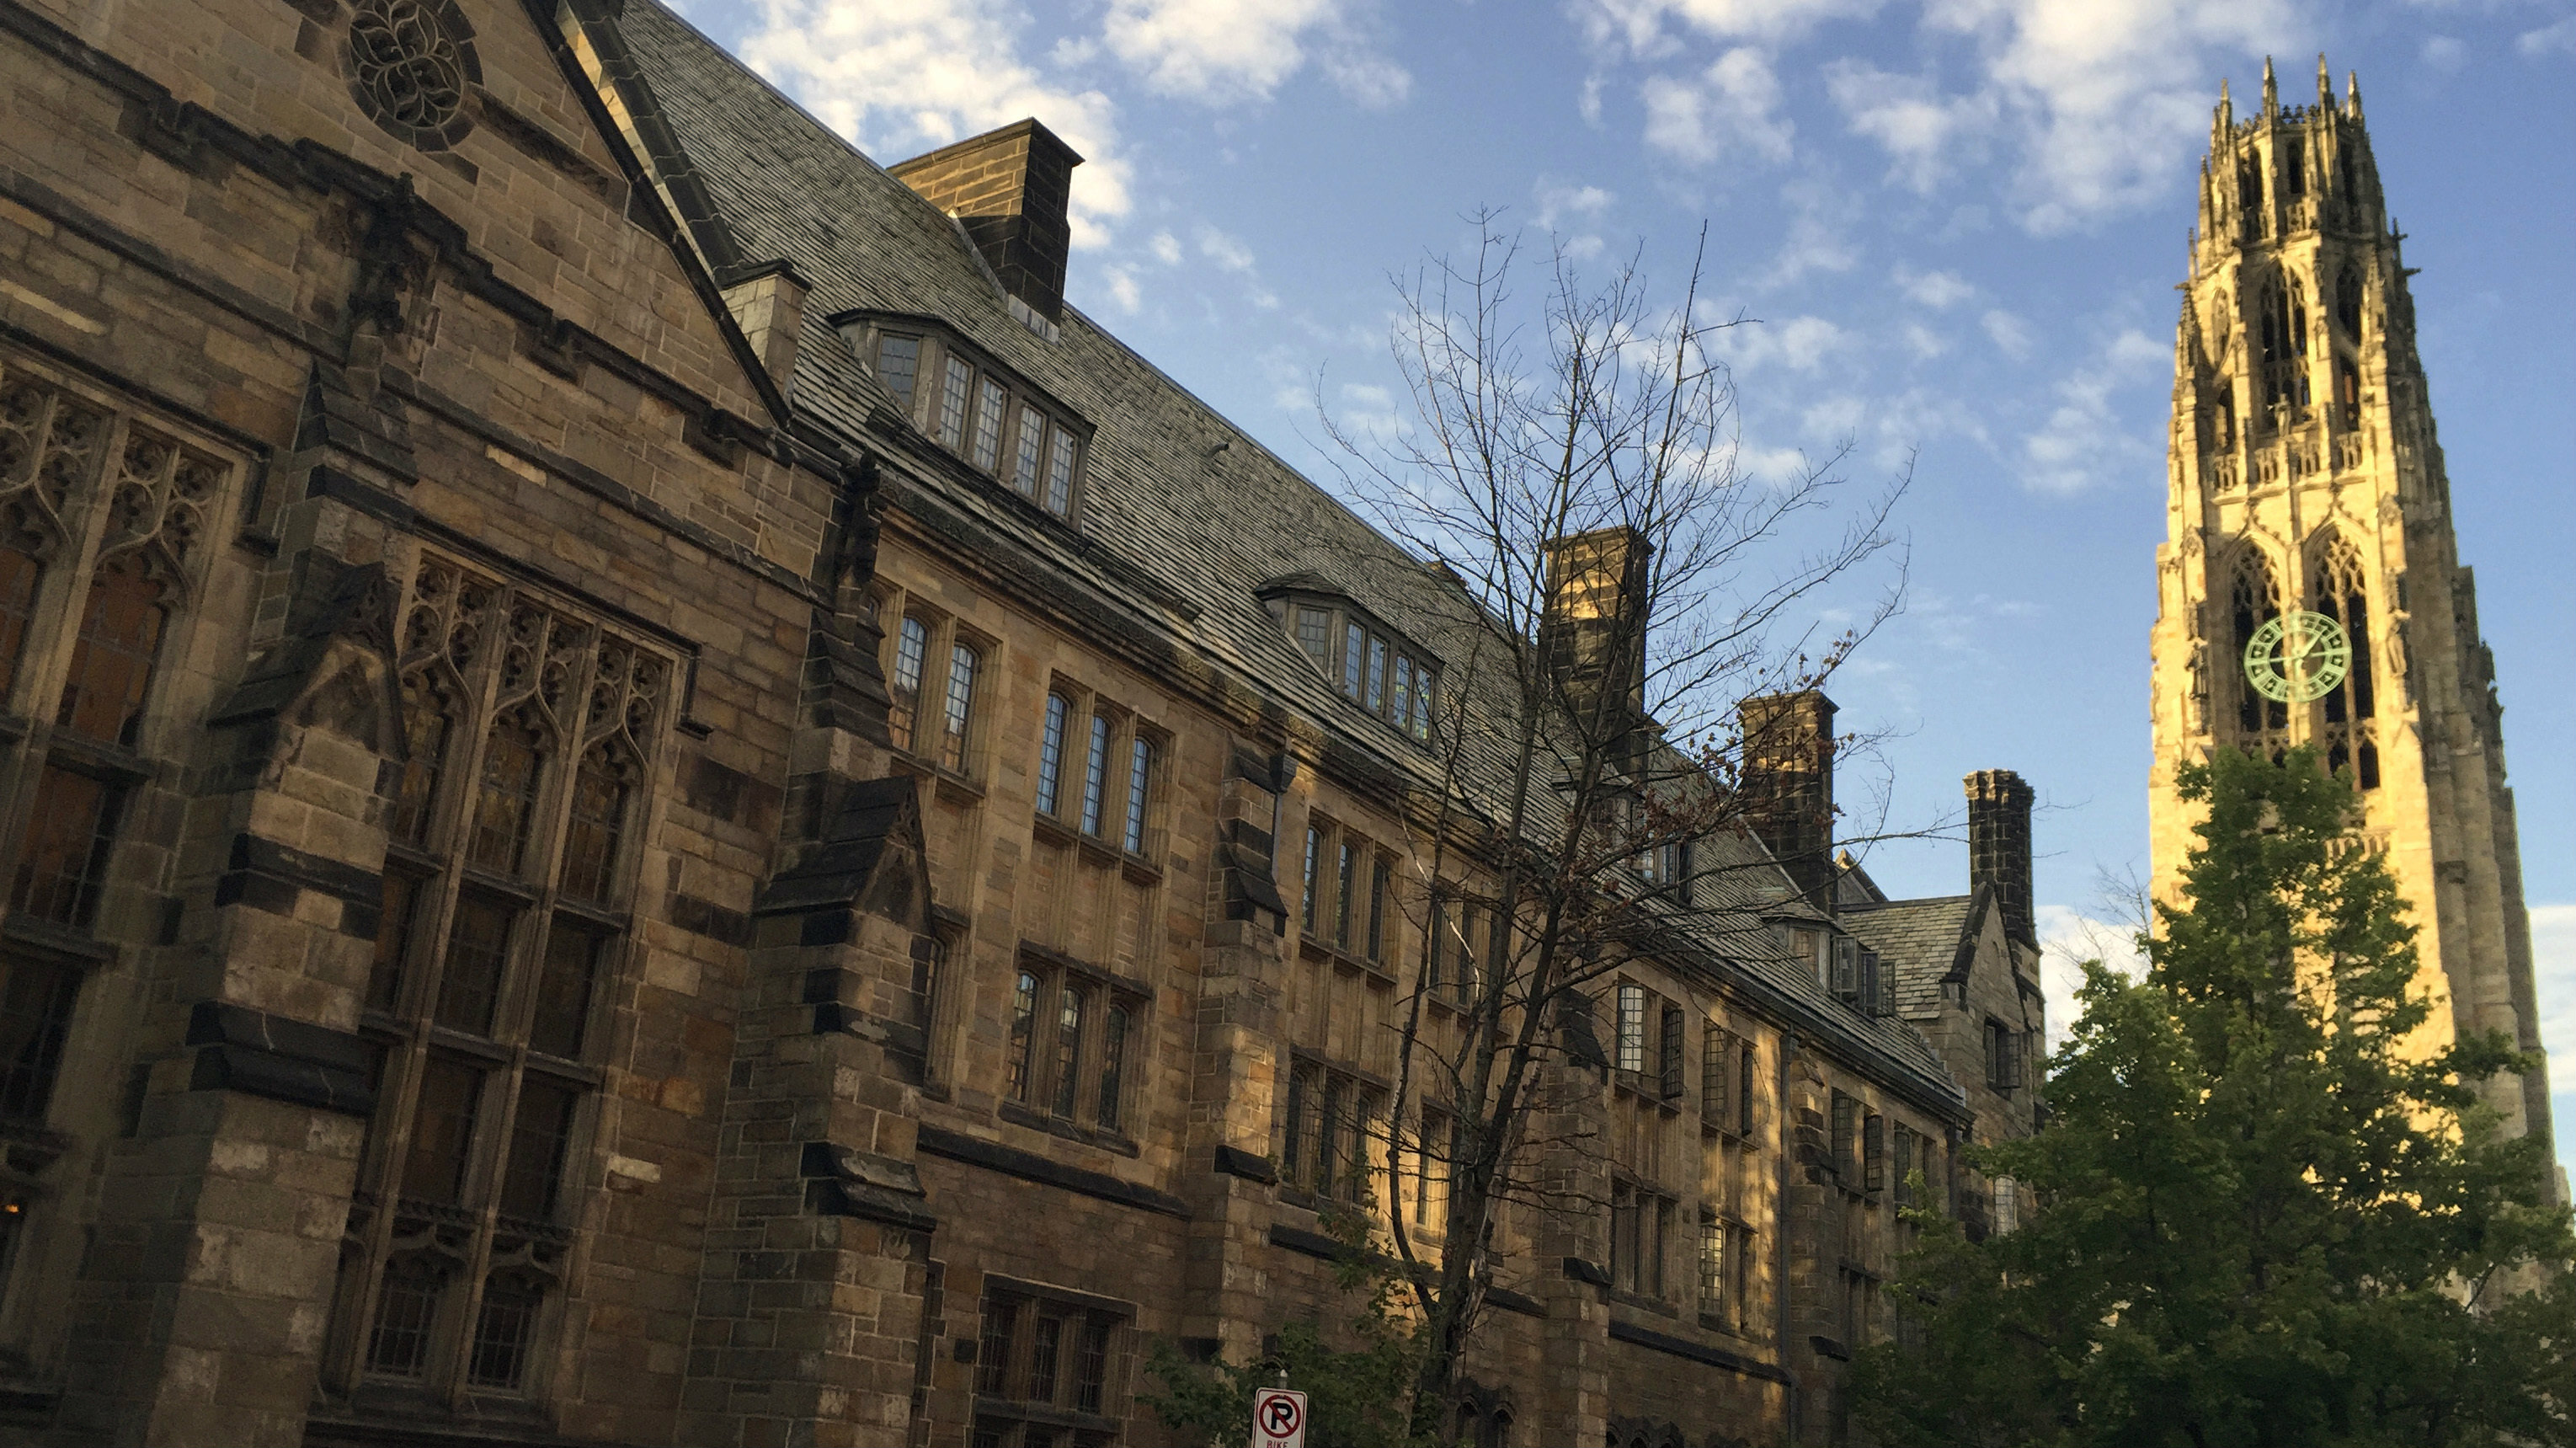 An image of Harness Tower and Yale University.